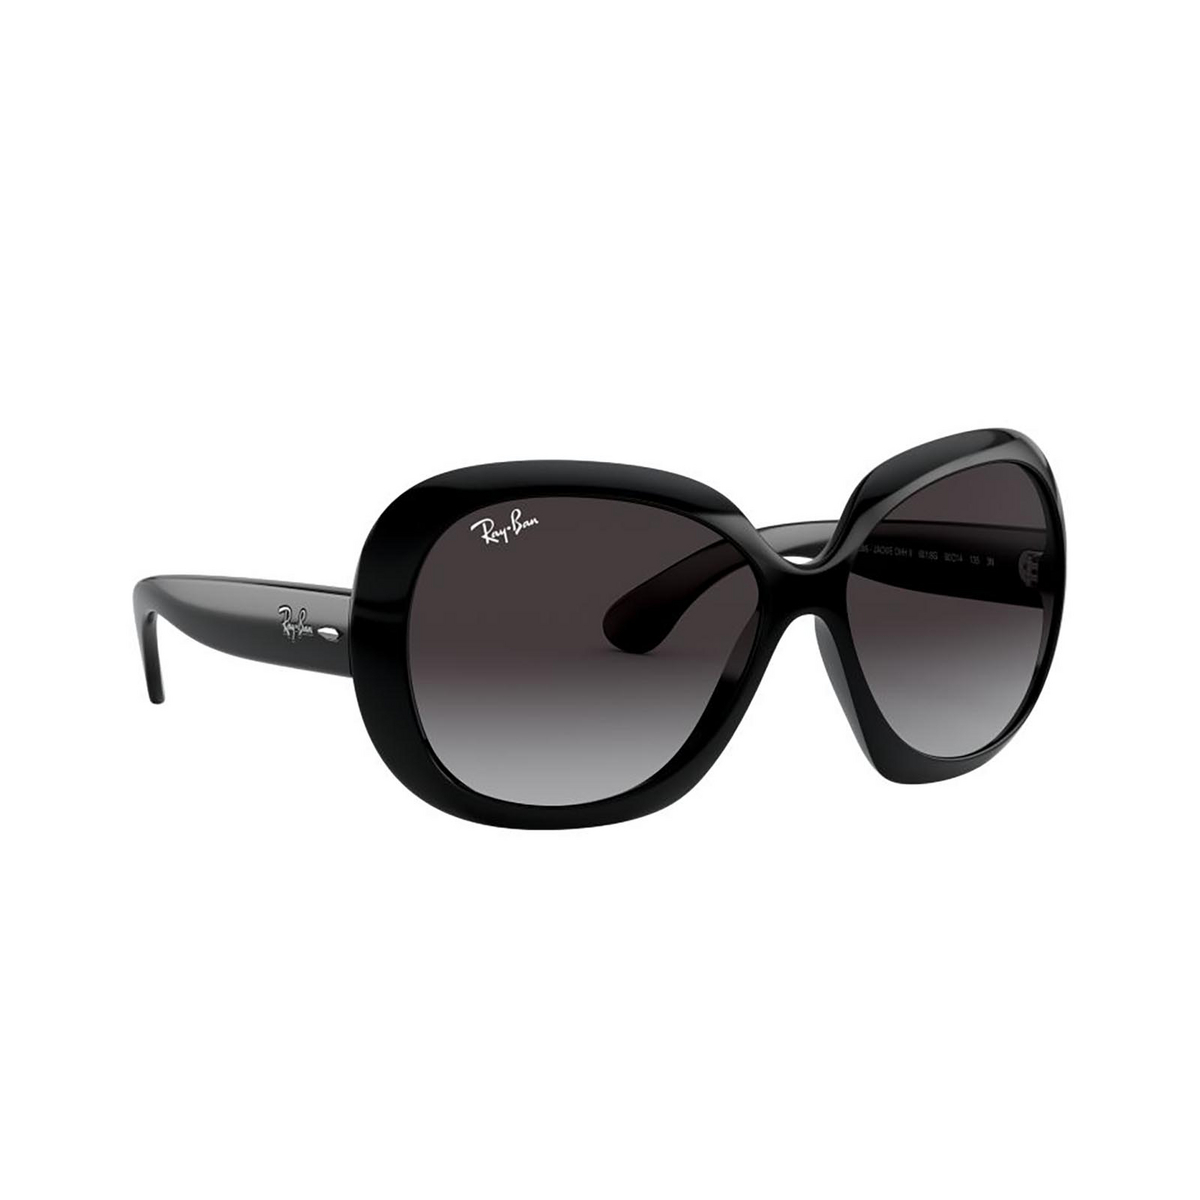 Ray-Ban® Butterfly Sunglasses: Jackie Ohh Ii RB4098 color Black 601/8G - 2/3.